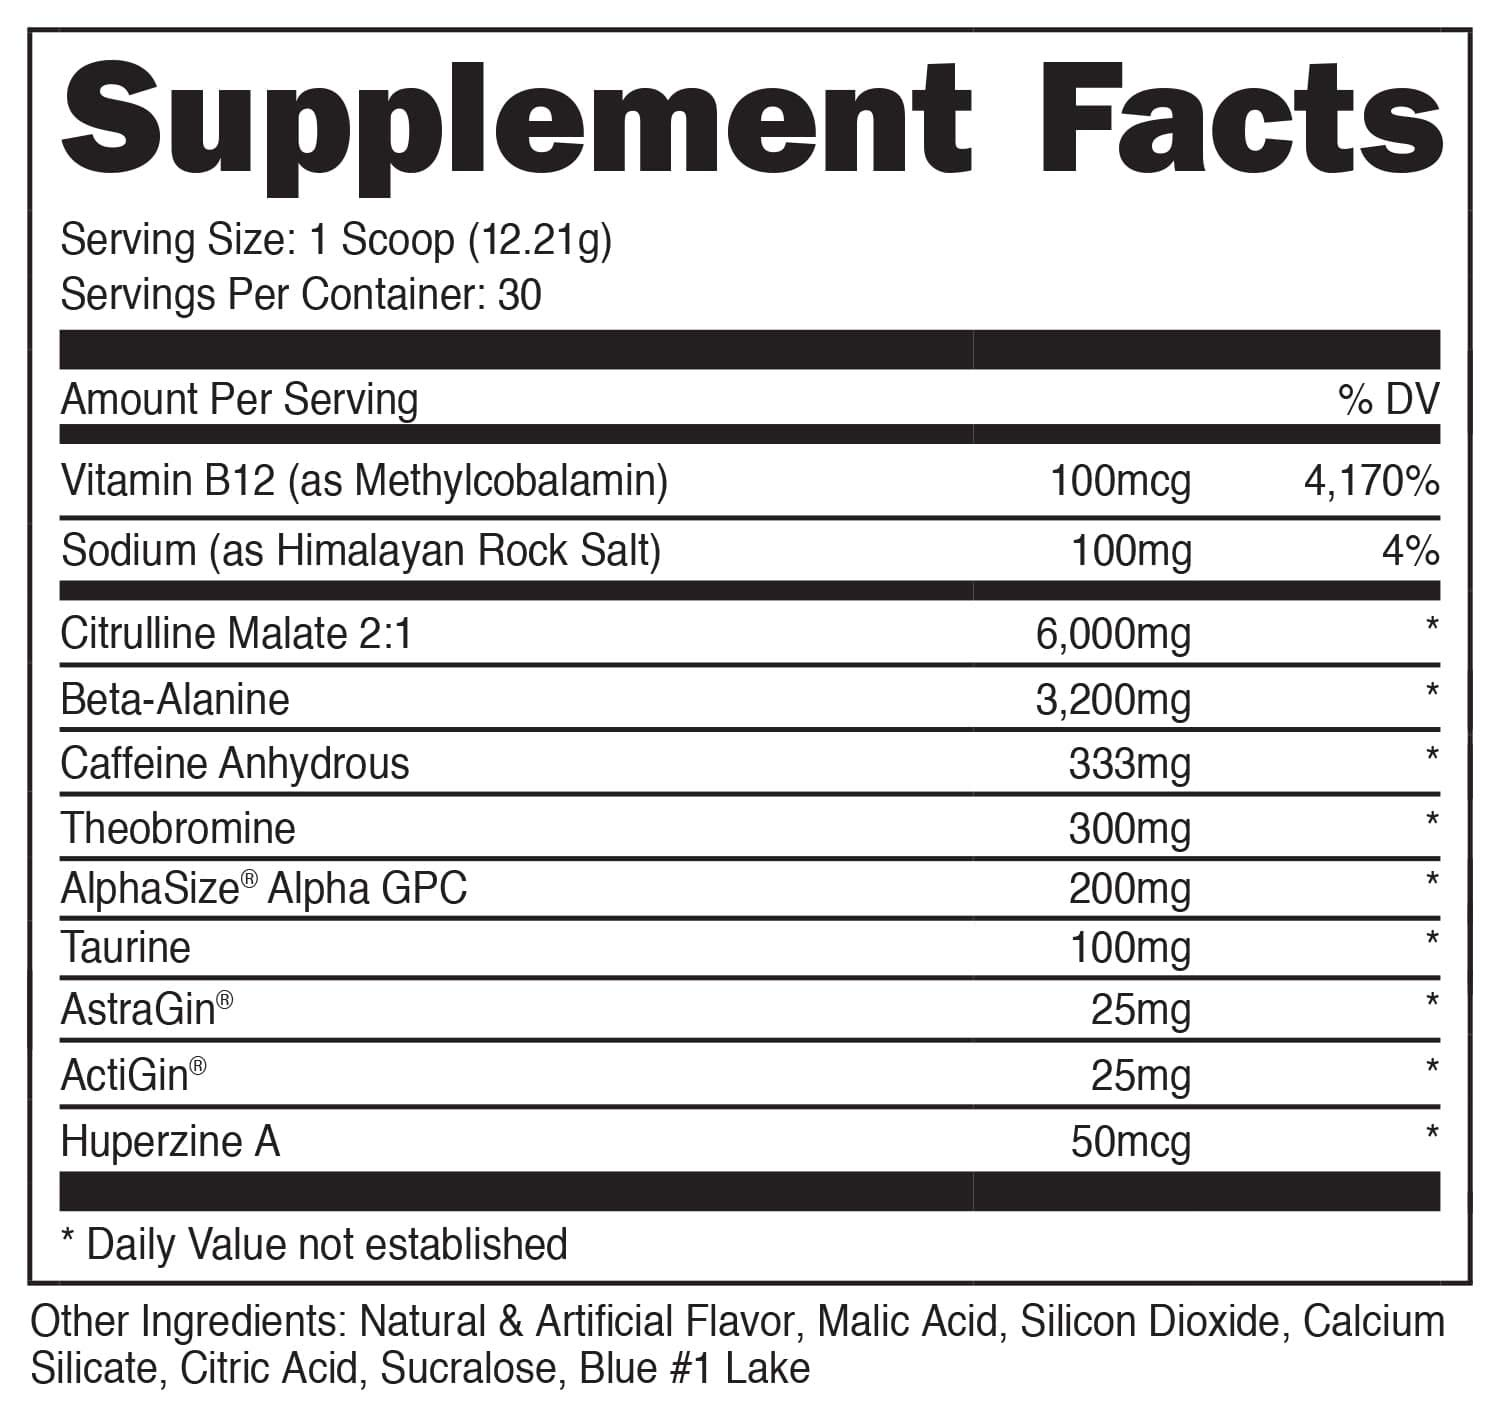 Bucked Up - HIGH STIM Pre Workout - Best Tasting - Focus Nootropic, Pump, Strength and Growth, 30 Servings (Blue Raz) by BUCKED UP (Image #3)